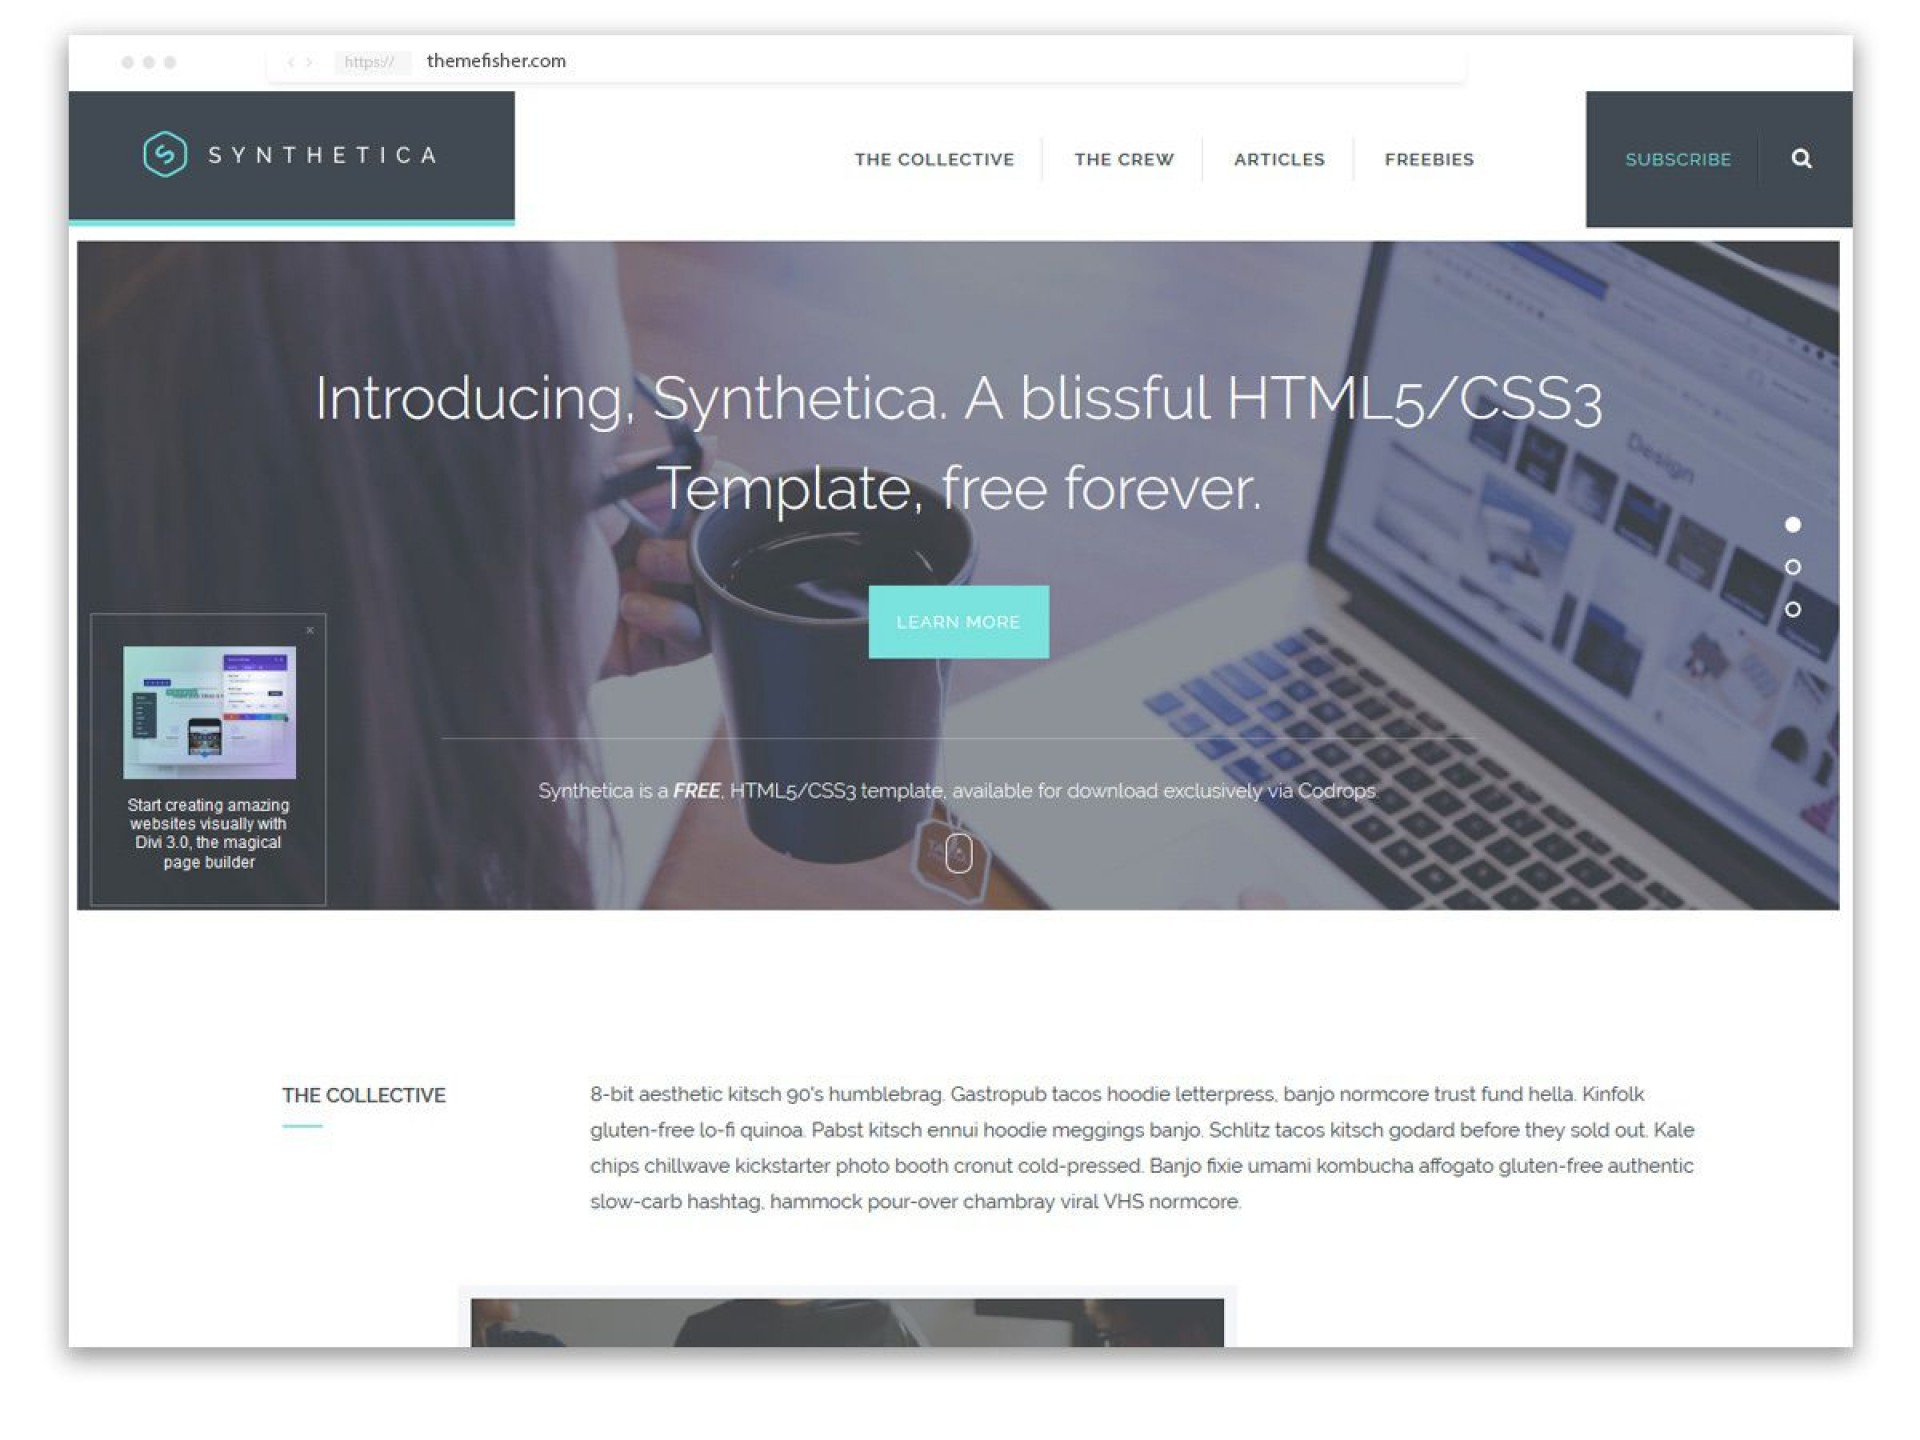 005 Fascinating One Page Website Template Html5 Responsive Free Download Highest Quality 1920